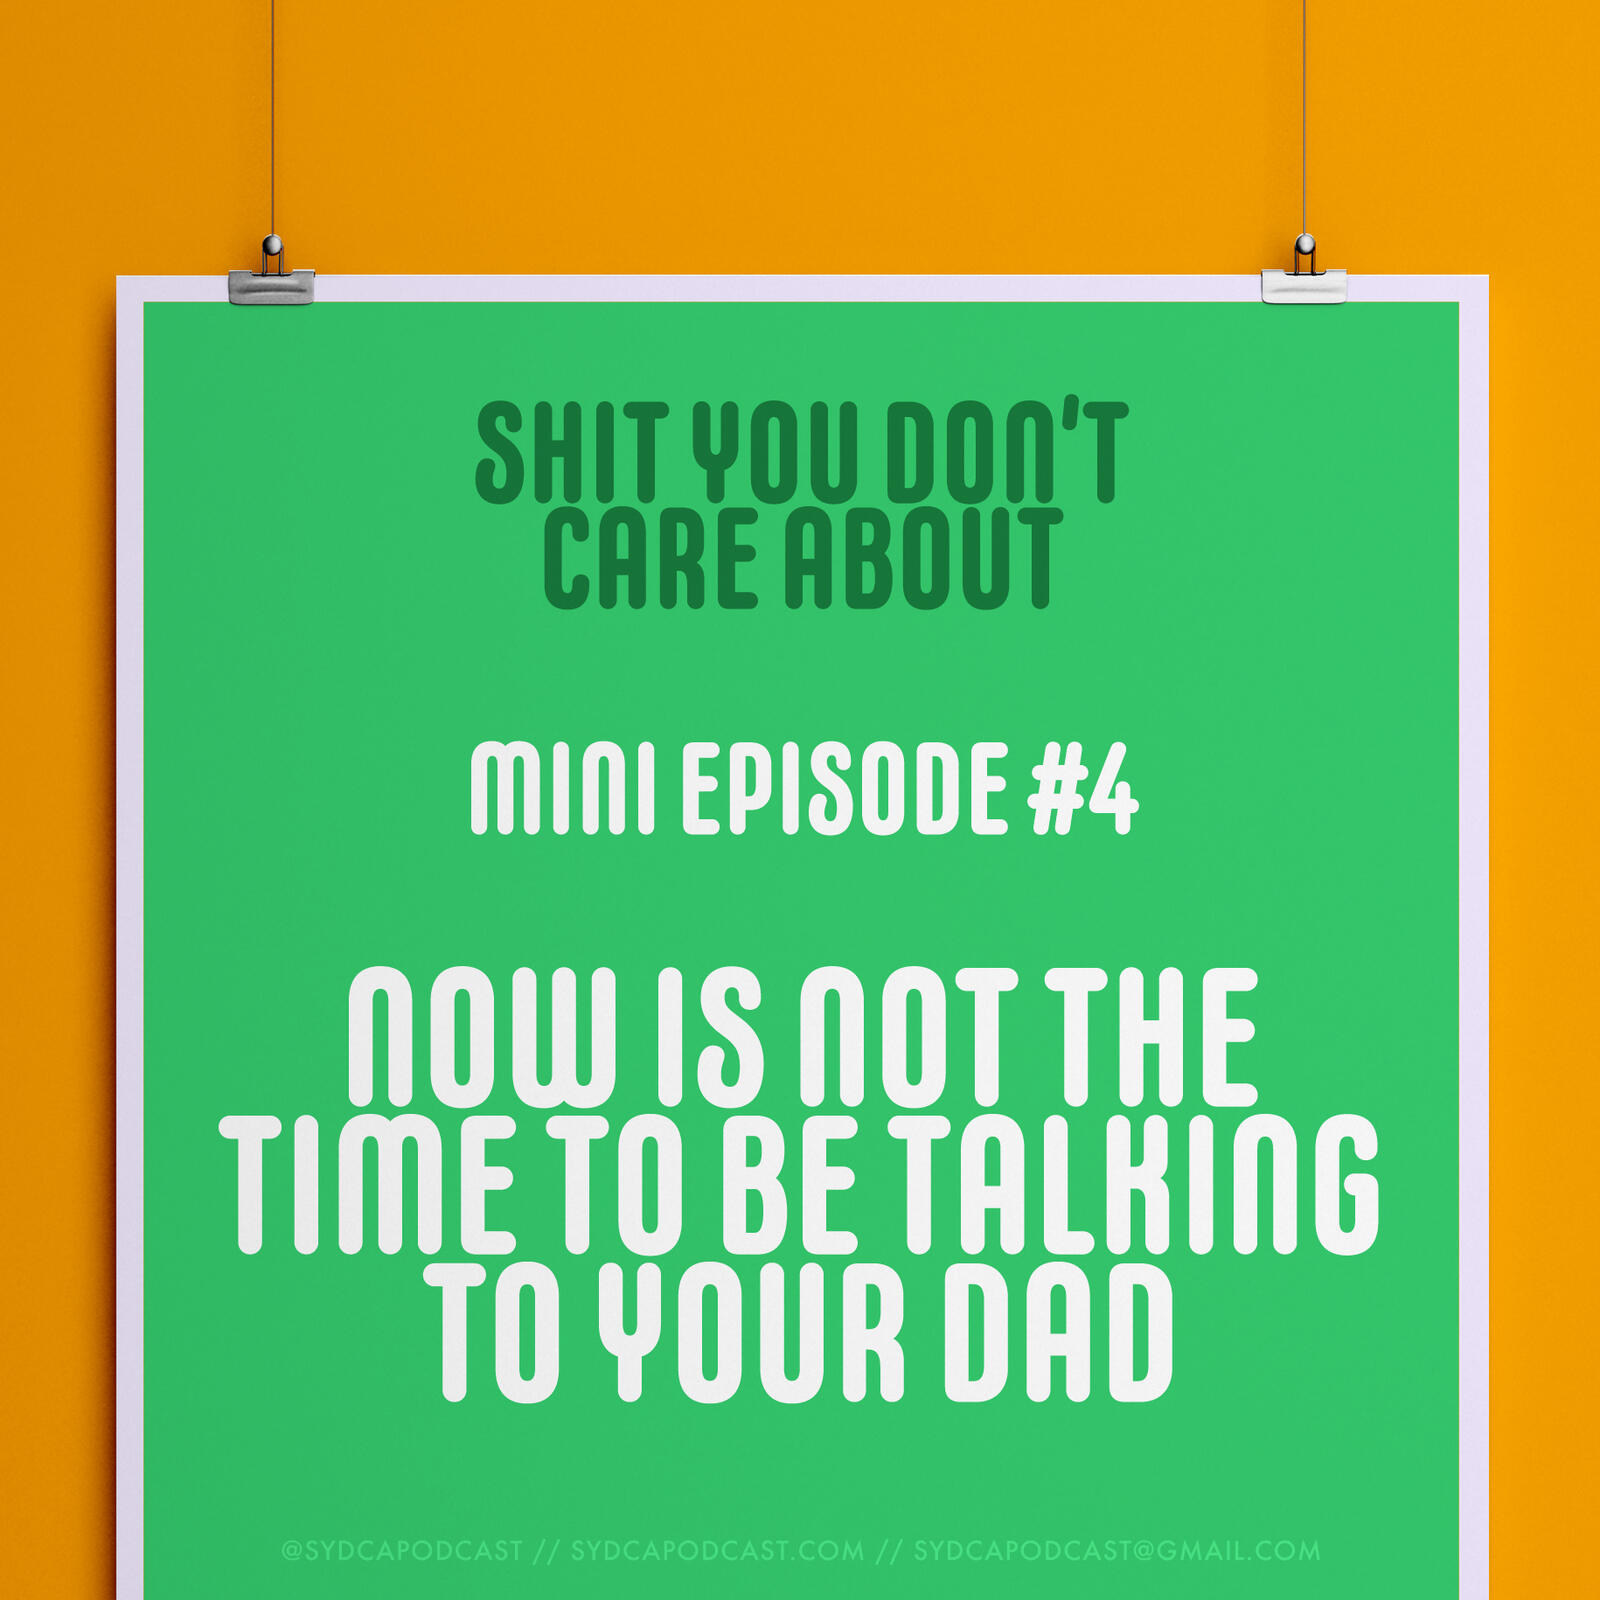 Mini-Episode 4: Now Is Not the Time To Be Talking To Your Dad